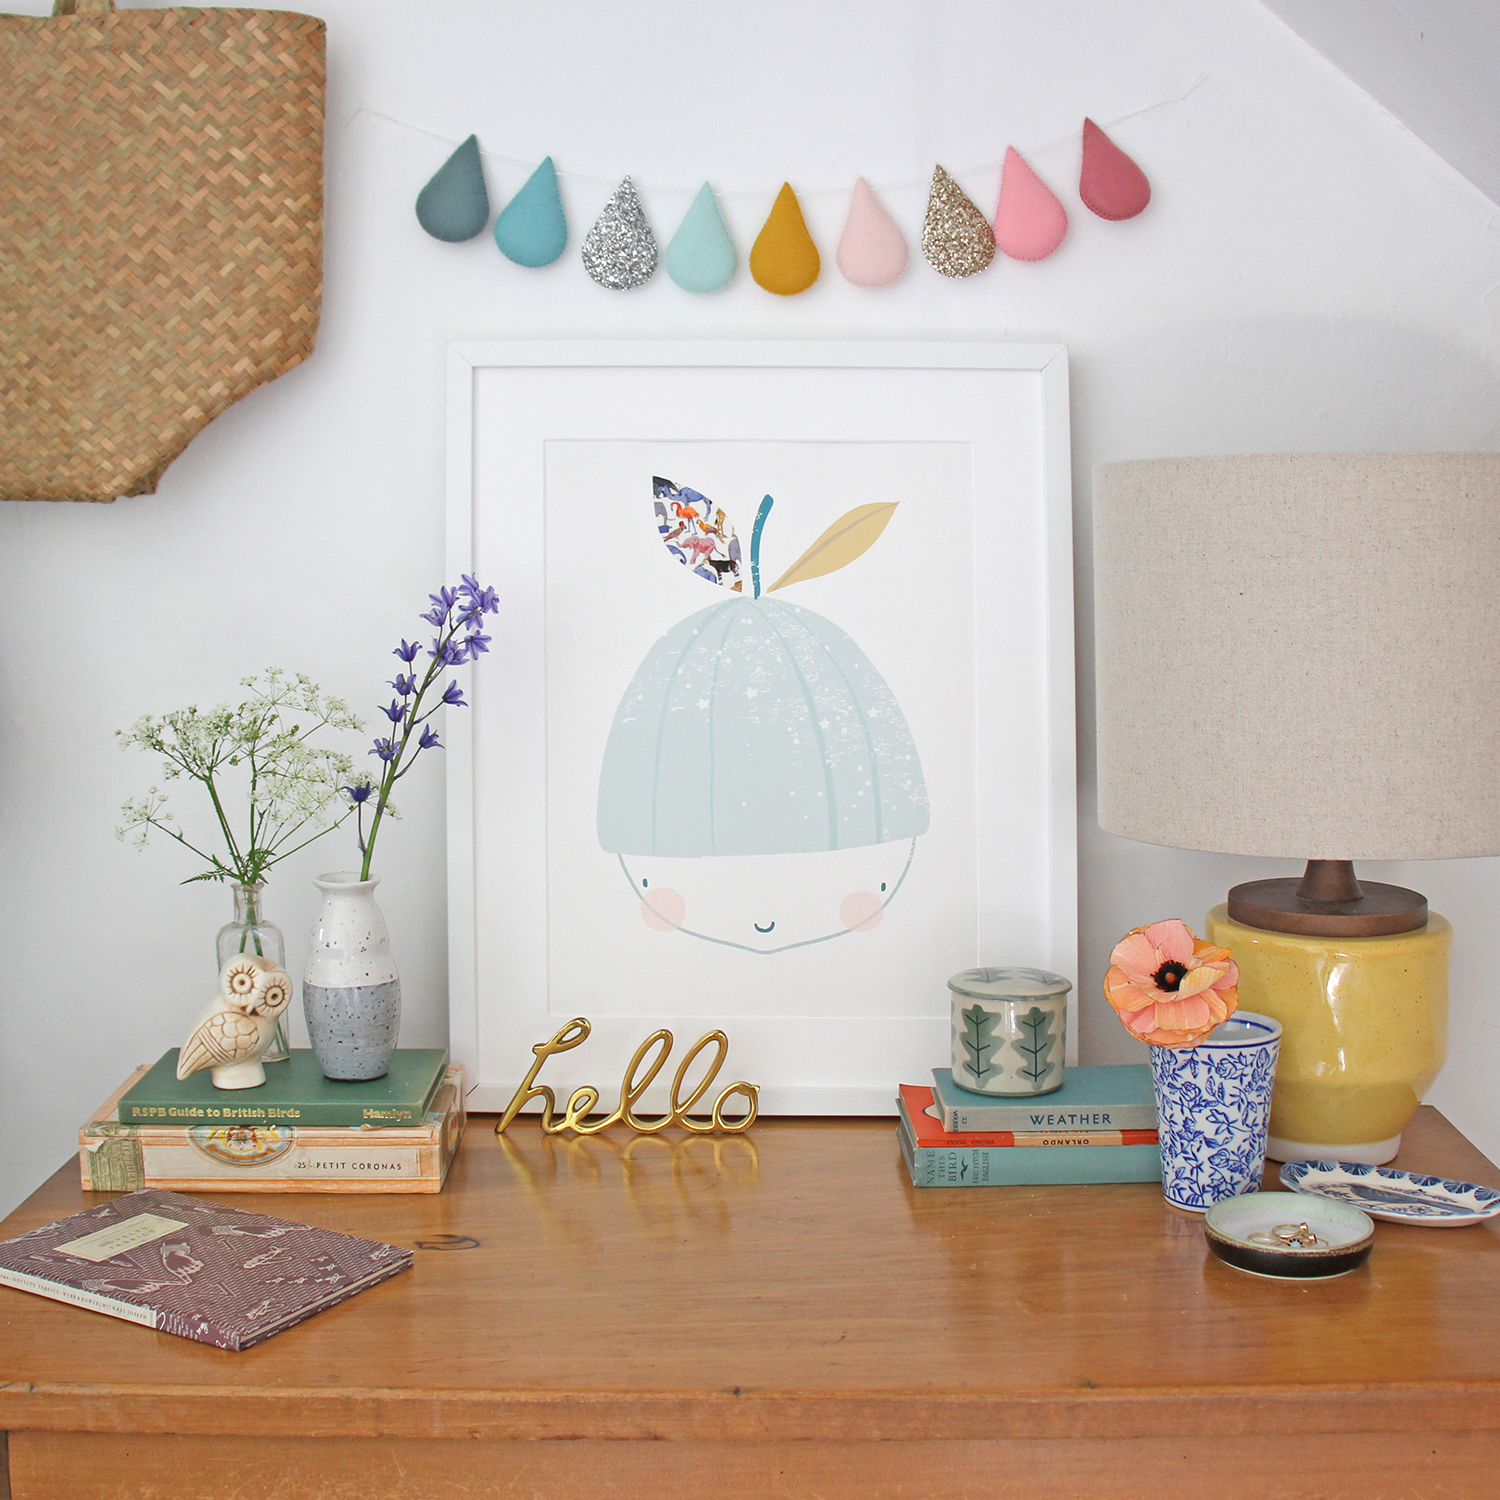 The-Charming-Press-product-photography-nancy-straughan-nursery-prints-art-styling-acorn.jpg